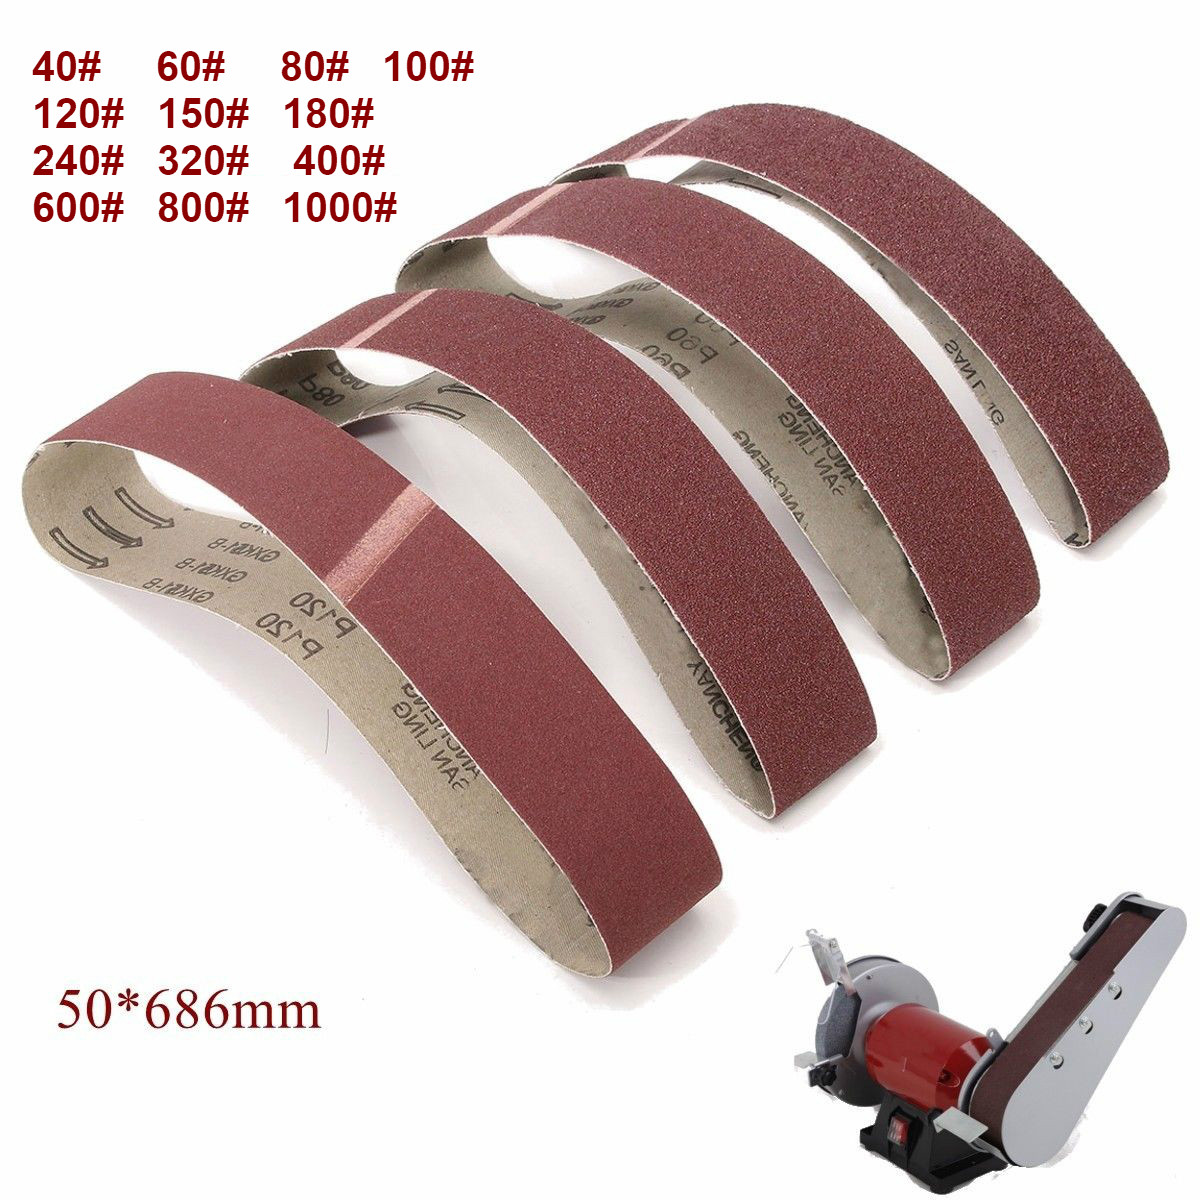 10Pack 686*50mm Sanding Belts 40-1000 Grit  Aluminium Oxide Sander Sanding Belts Polishing Machine Abrasive Tools